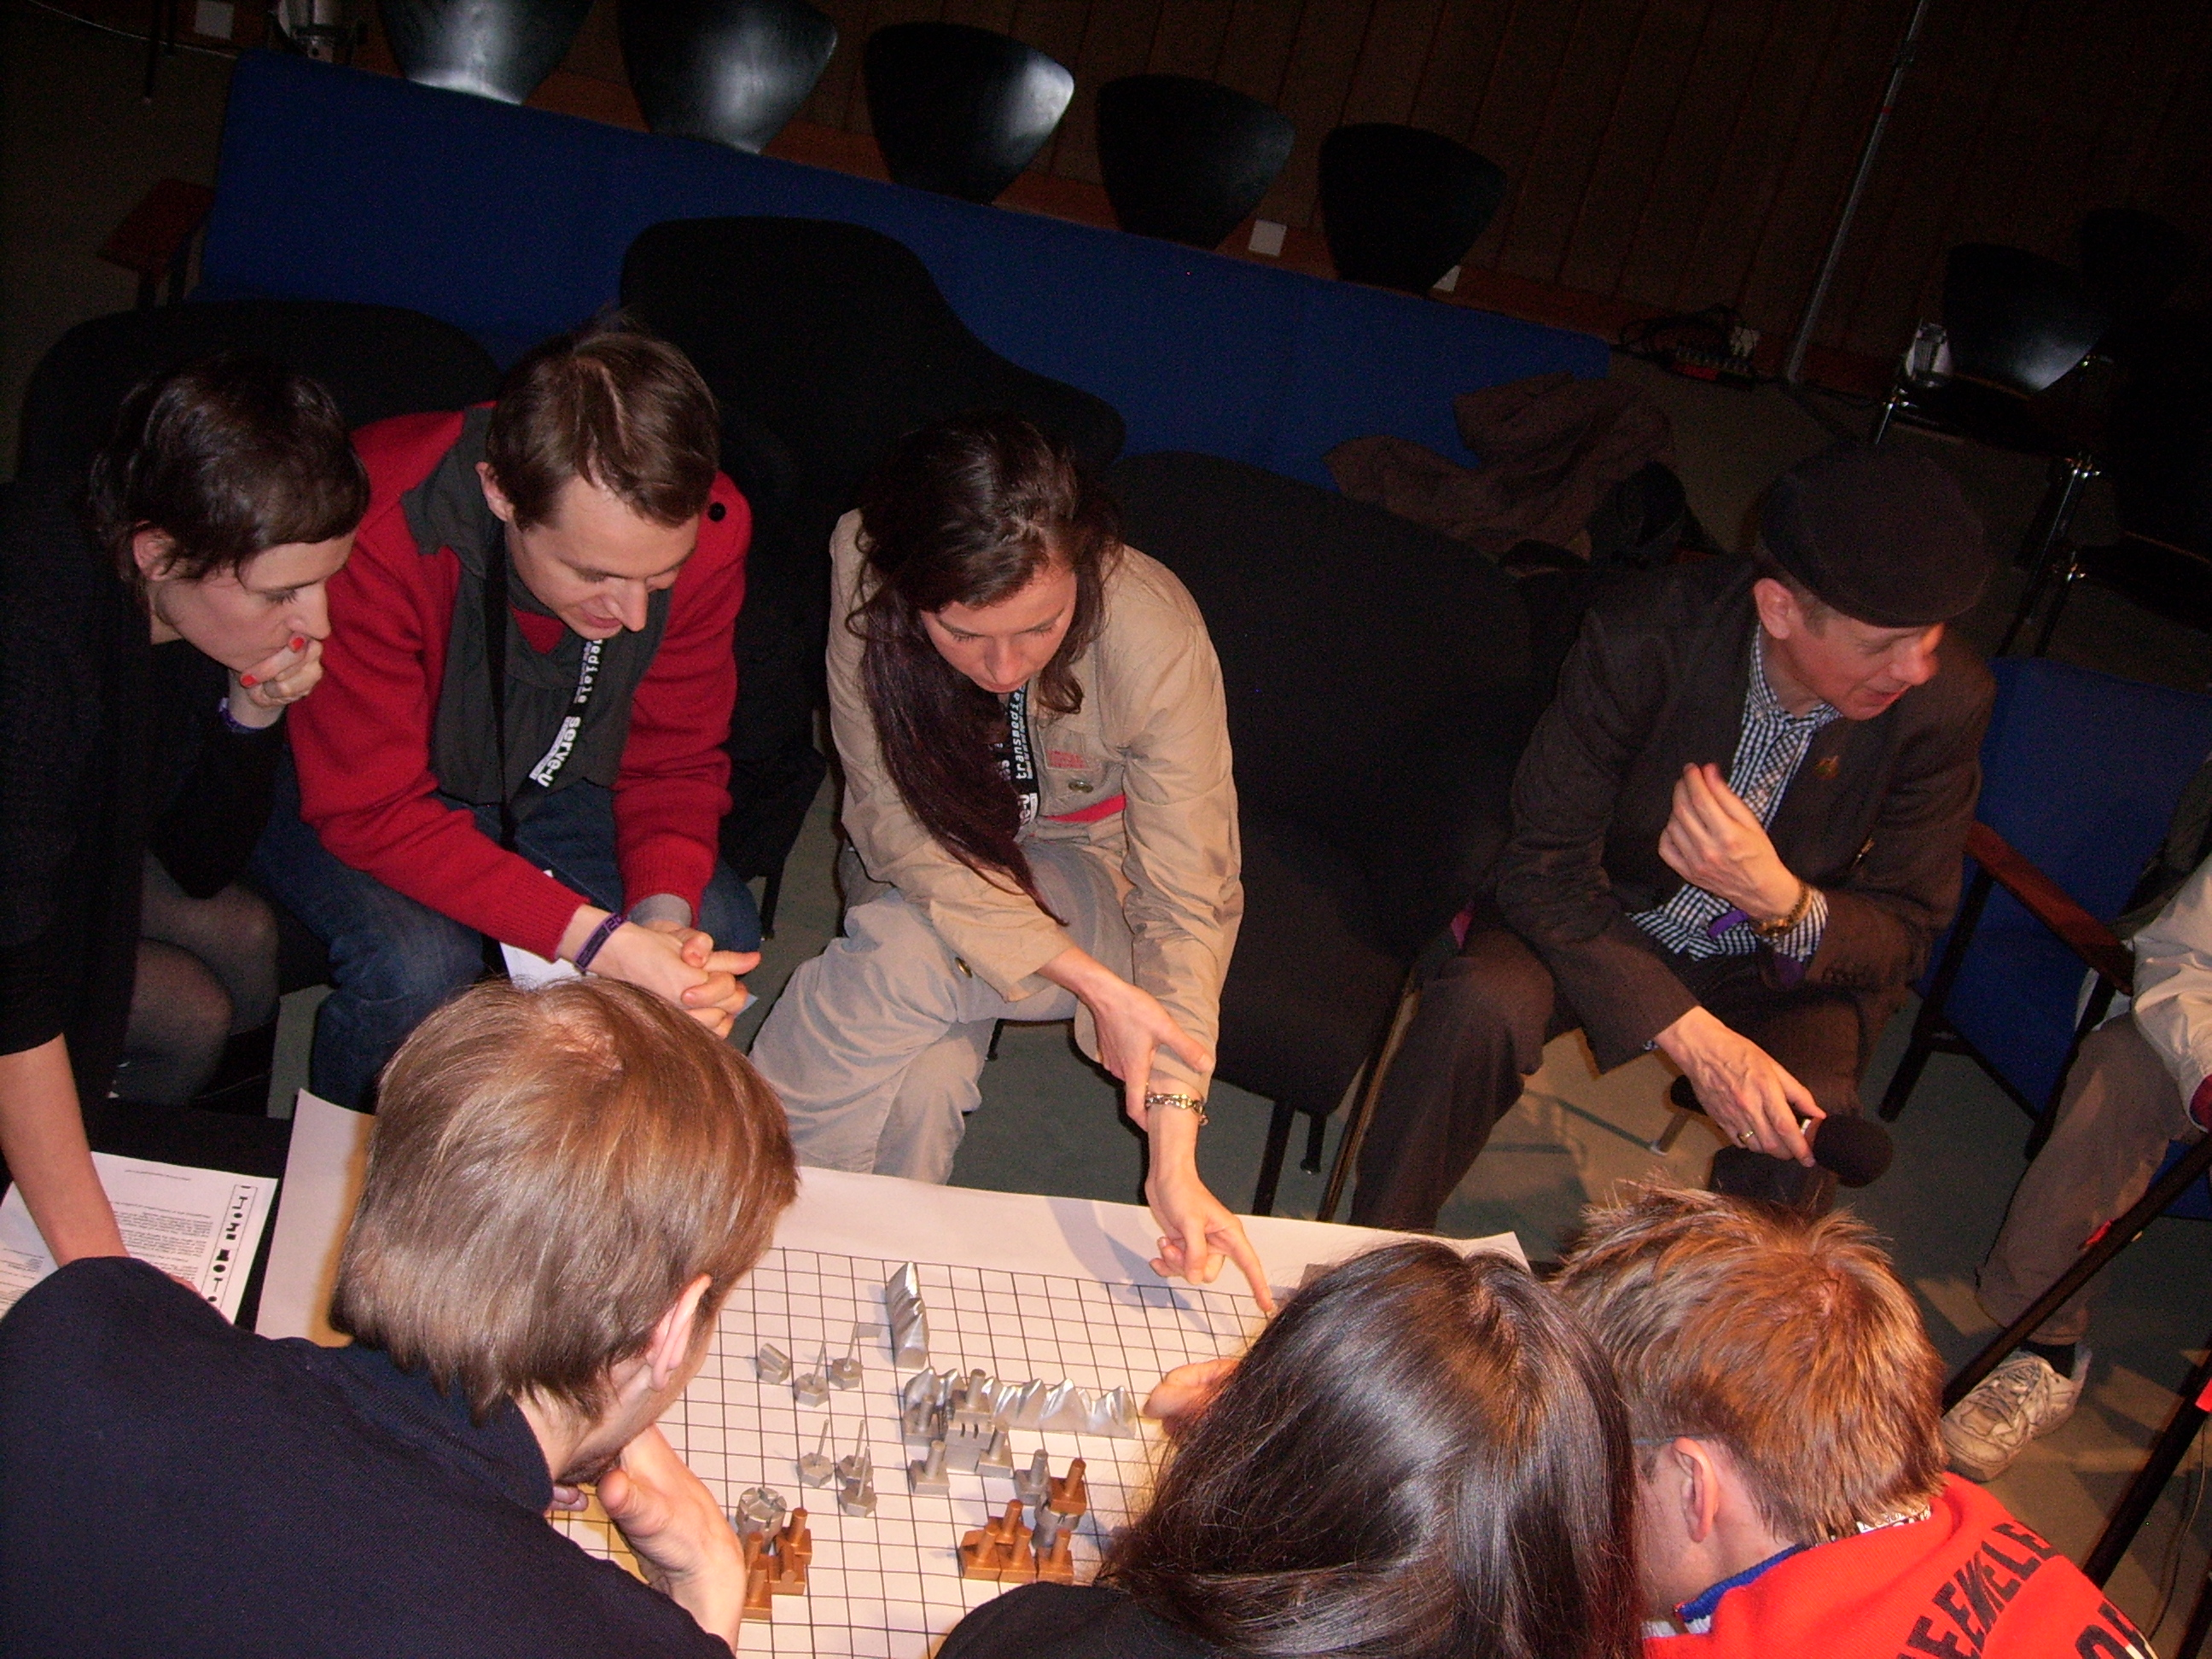 game_players_8